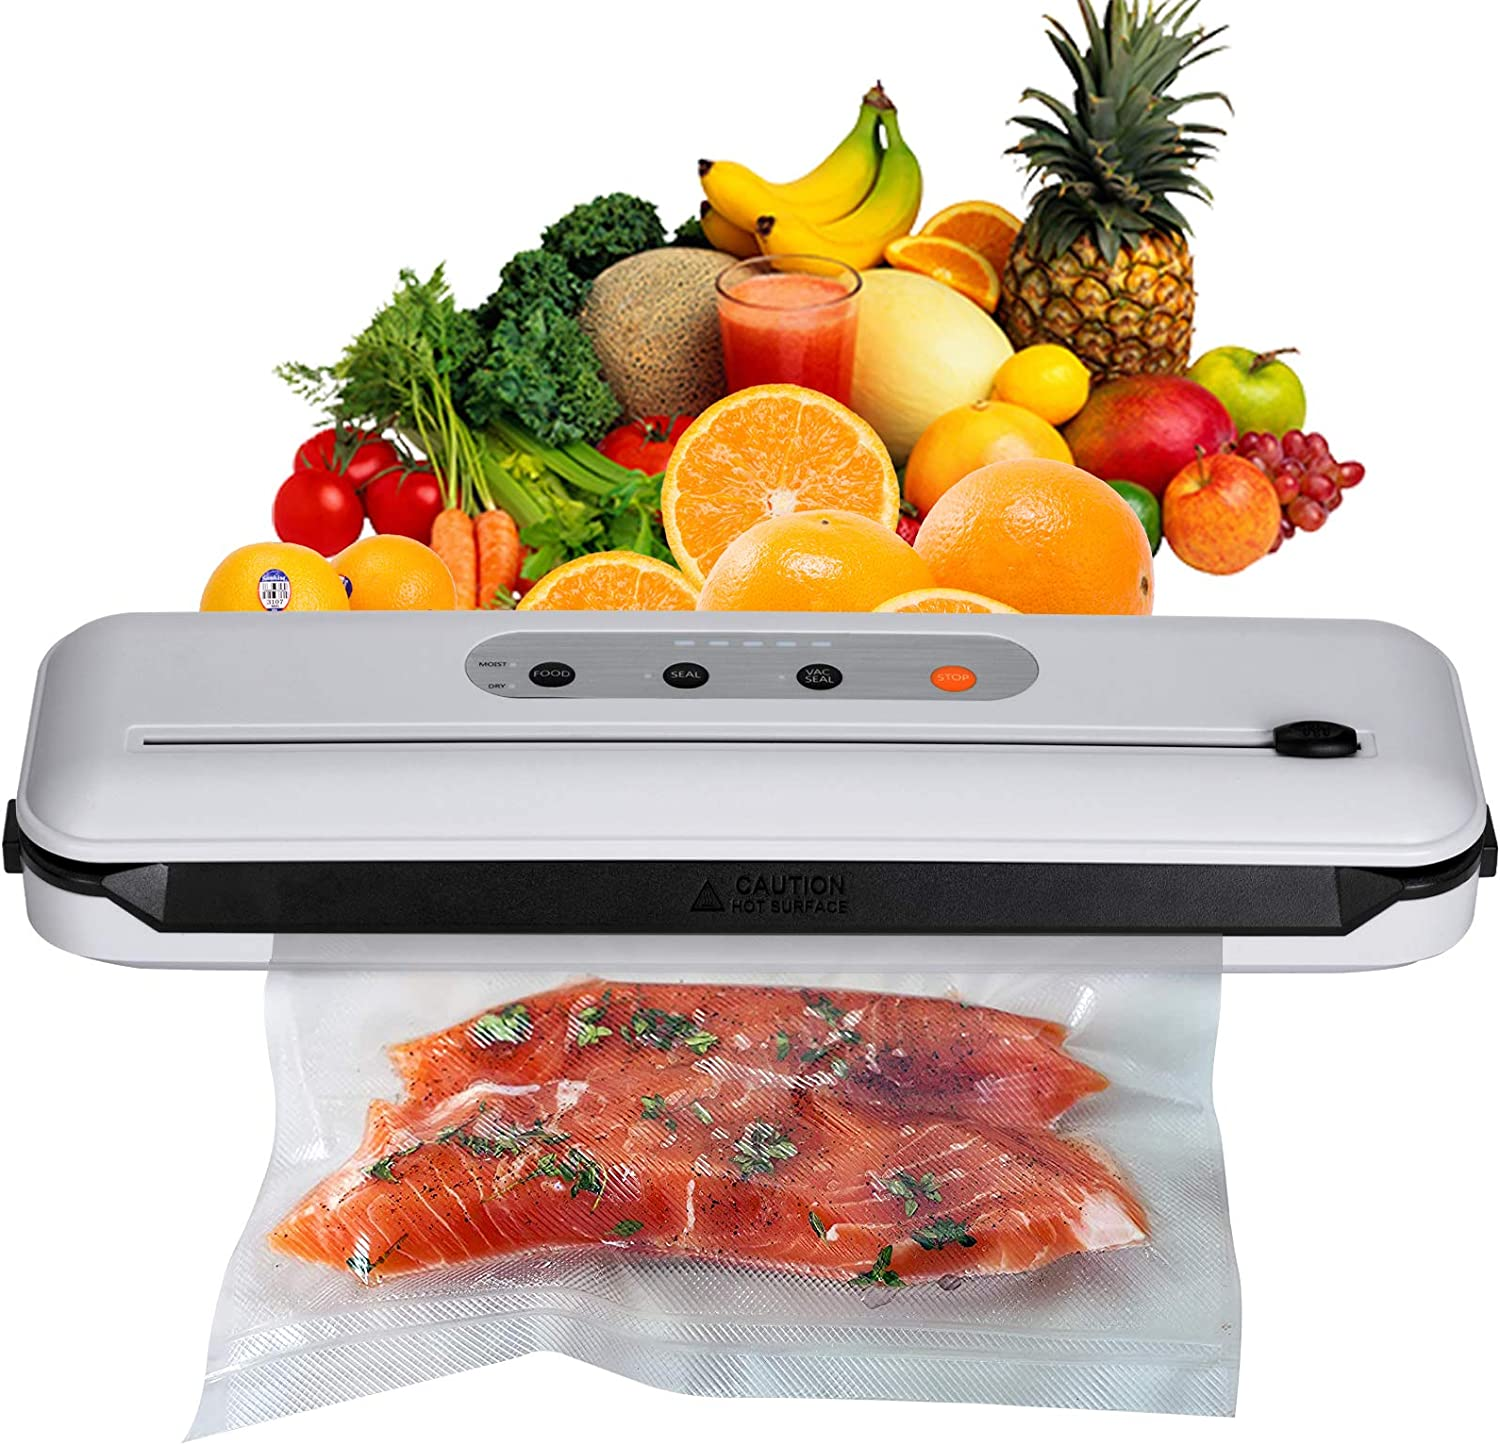 Vacuum Sealer Machine, Automatic Food Saver Machine, Compact Food Sealer For Food Preservation, Dry & Moist Food Modes, Patented Cutter, Led Indicator Light with 20 vacuum Bags